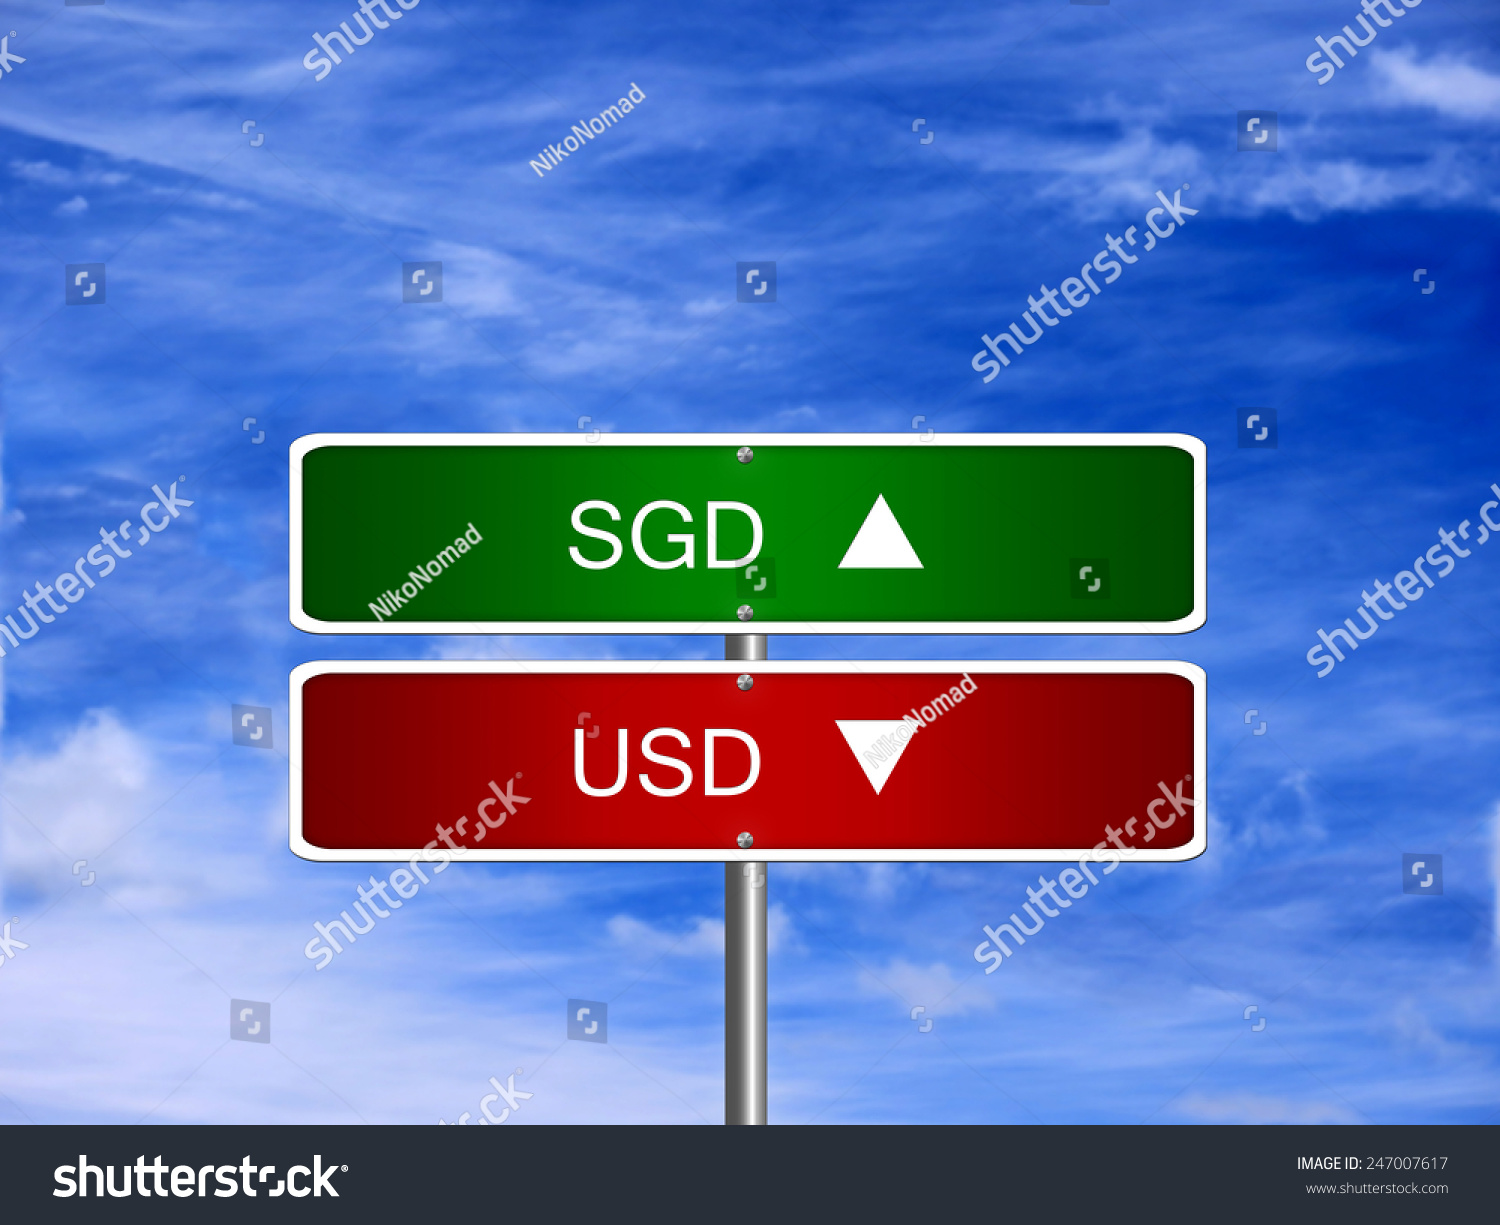 Sgd Usd Symbol Icon Down Currency Stock Photo Safe To Use